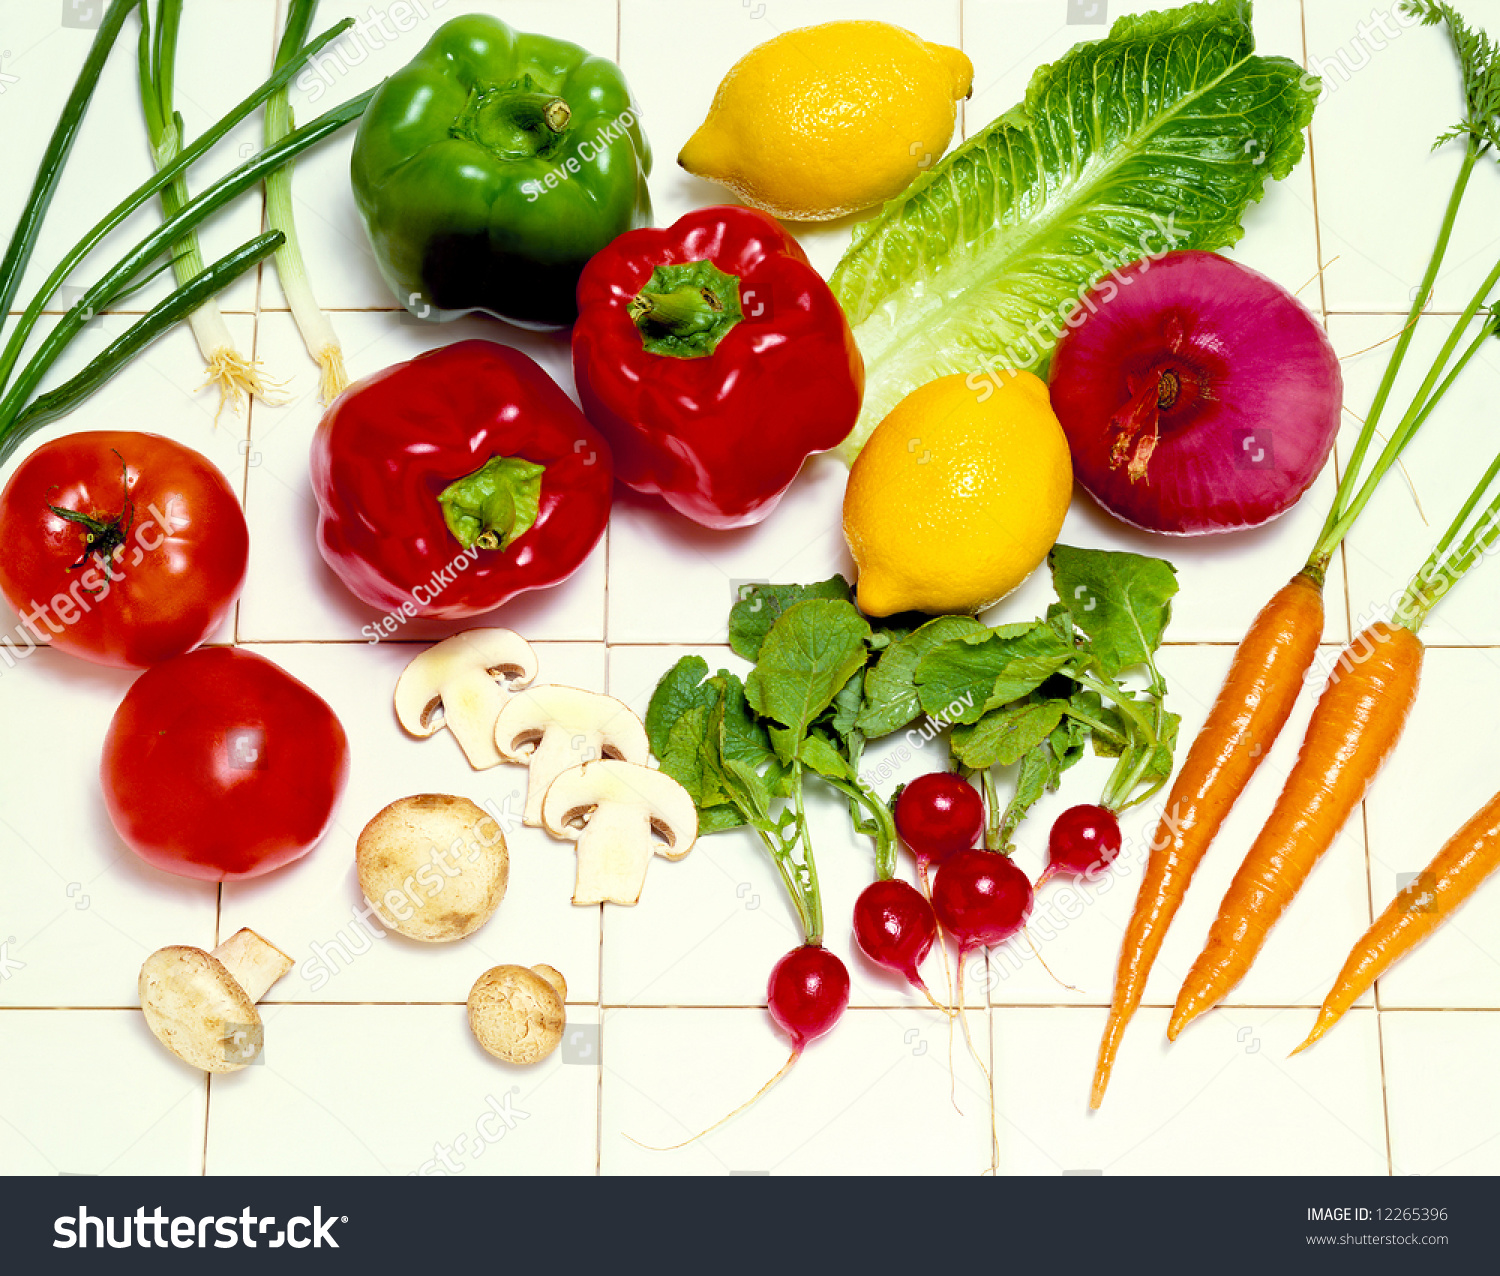 Kitchen Tiles Fruits Vegetables: Vegetables On White Tile Stock Photo 12265396 : Shutterstock